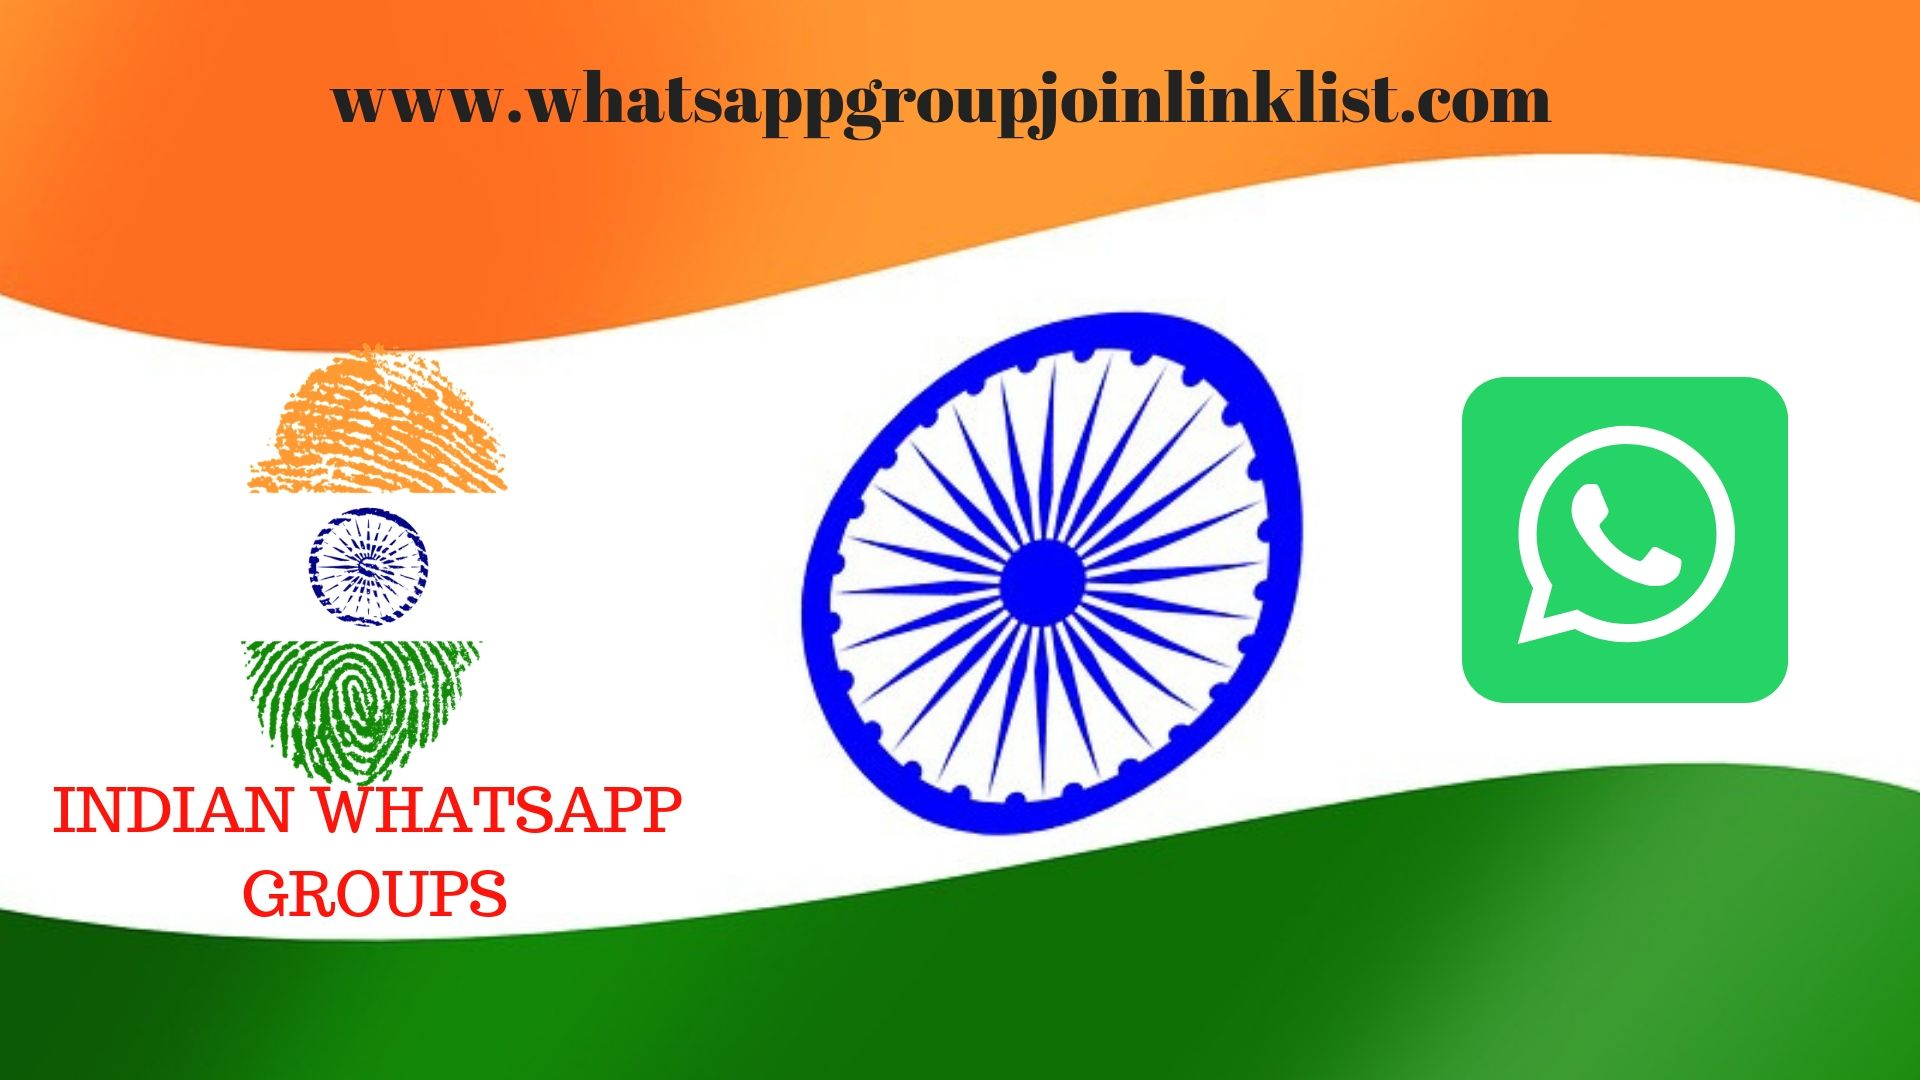 Hi folks, This time WhatsApp group join link list is coming